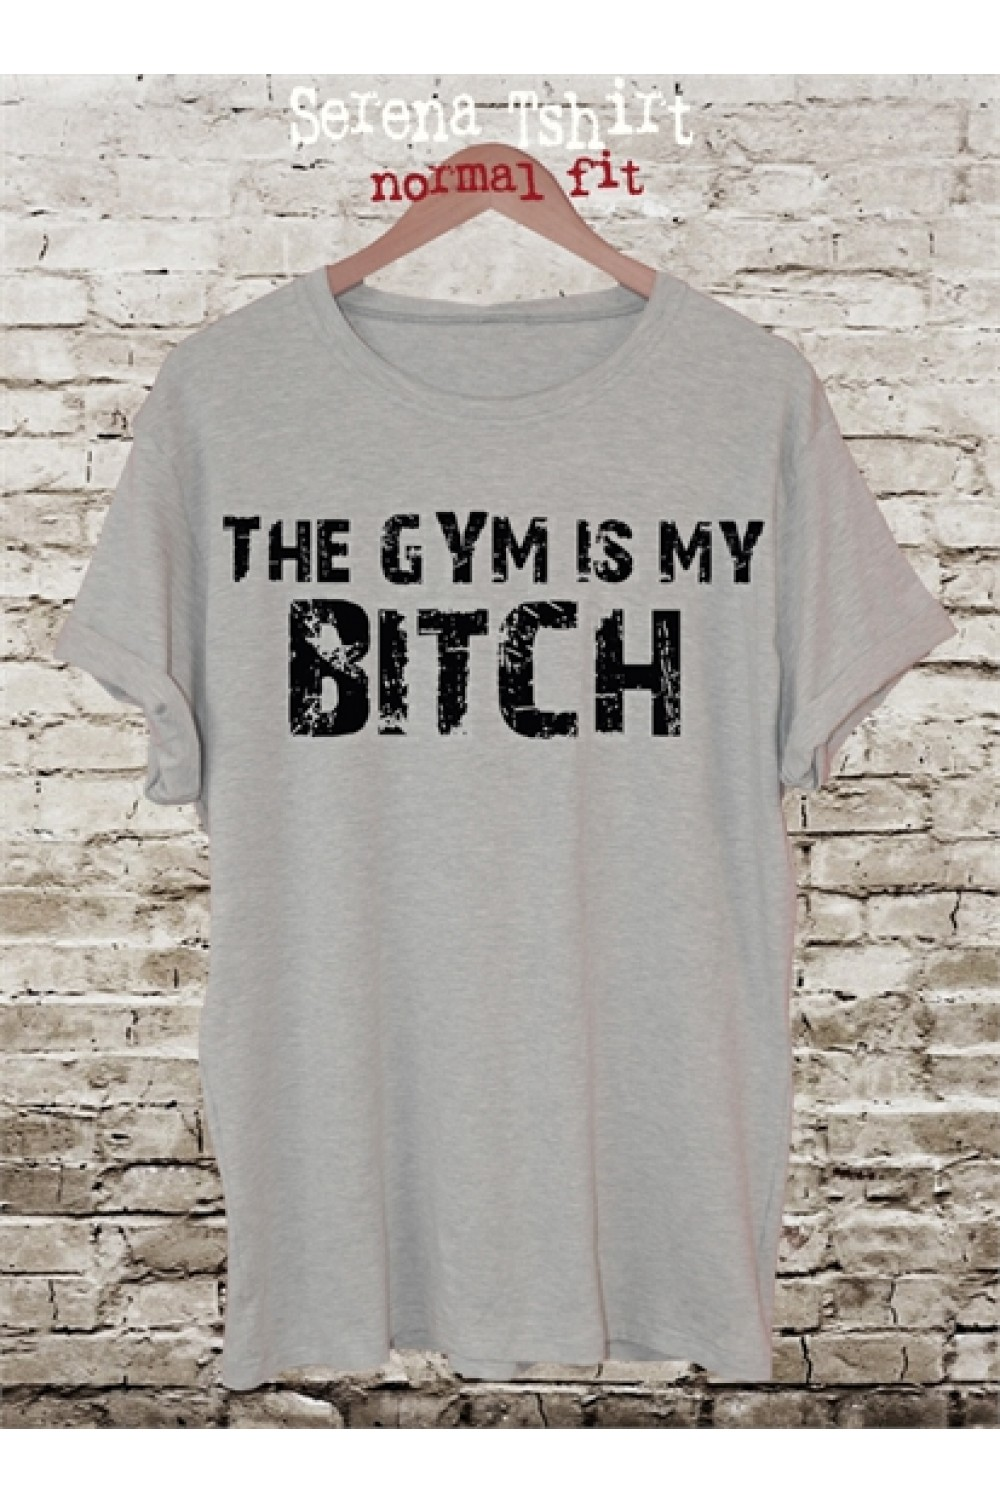 THE GYM IS MY BITCH Printed T shirt | Men Tank top | Sport Tee | Gym Tee